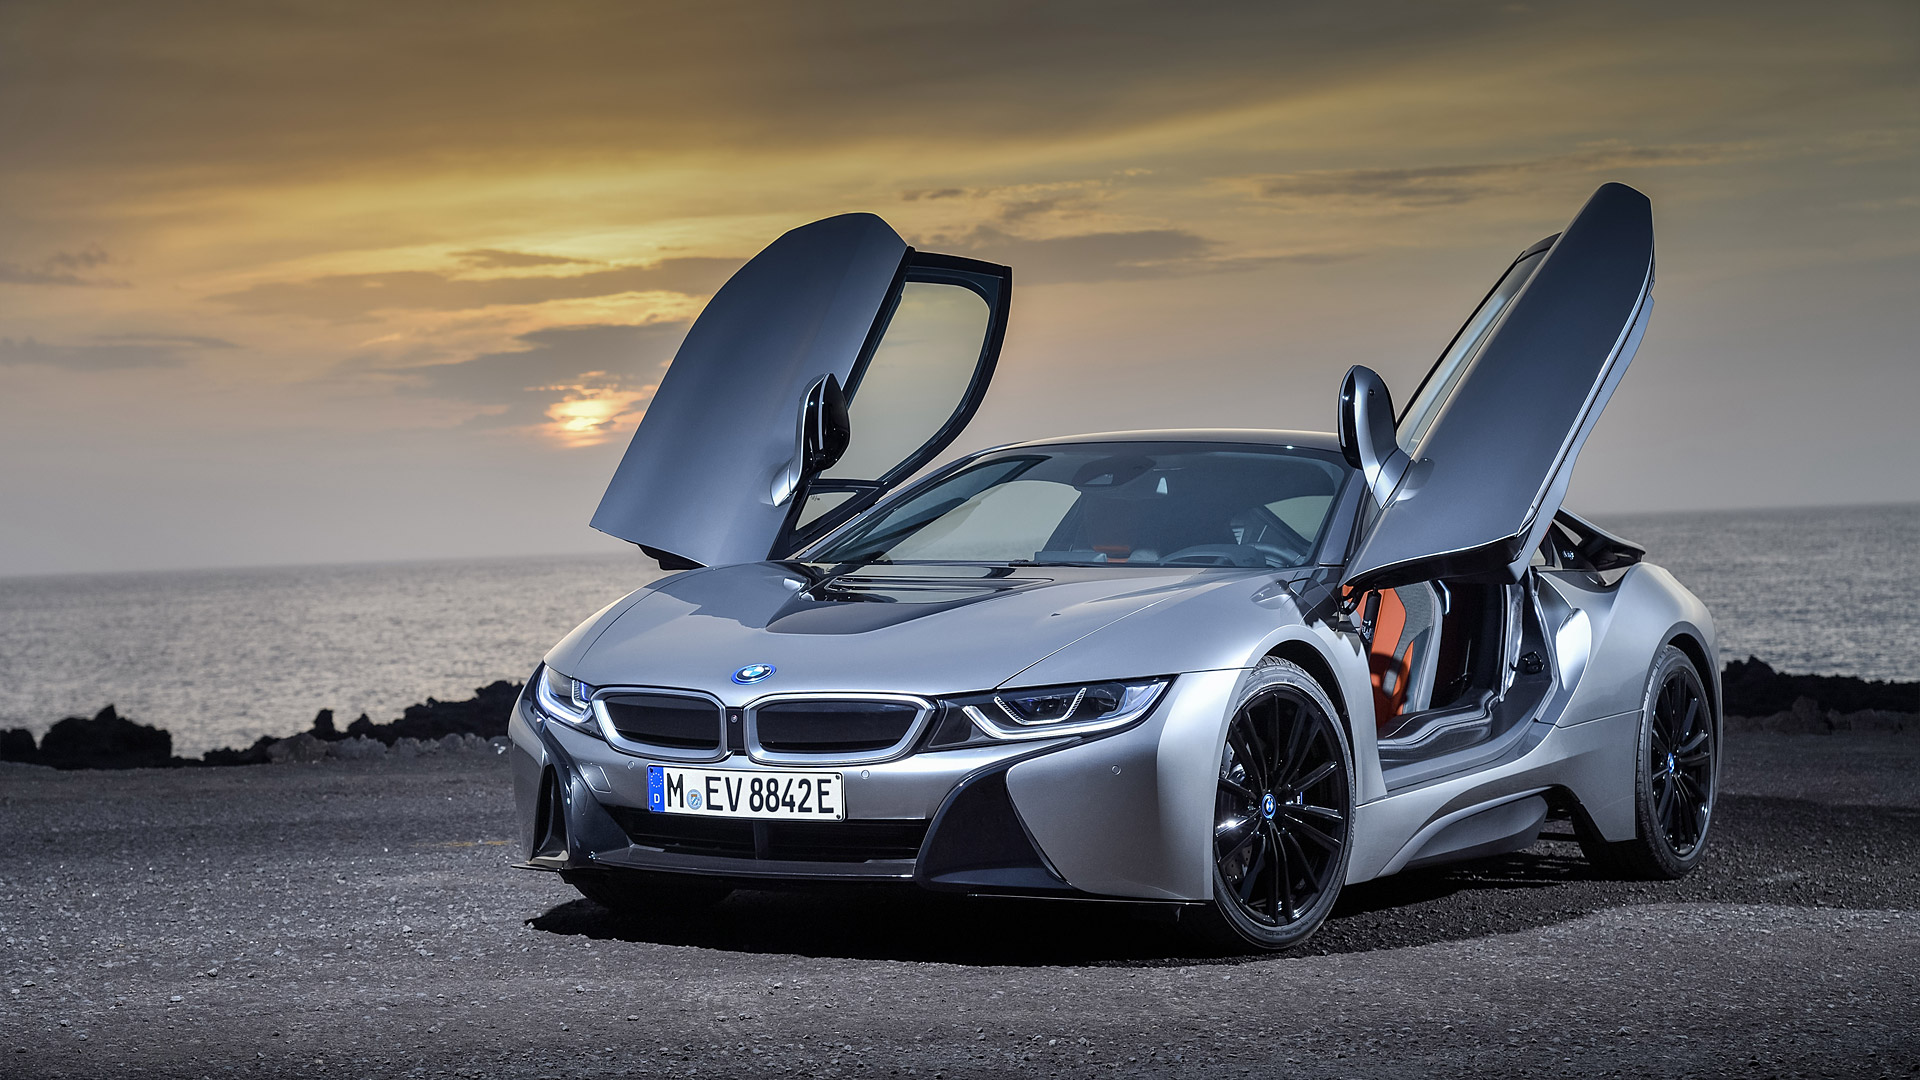 1920x1080 - BMW i3 Concept Wallpapers 12